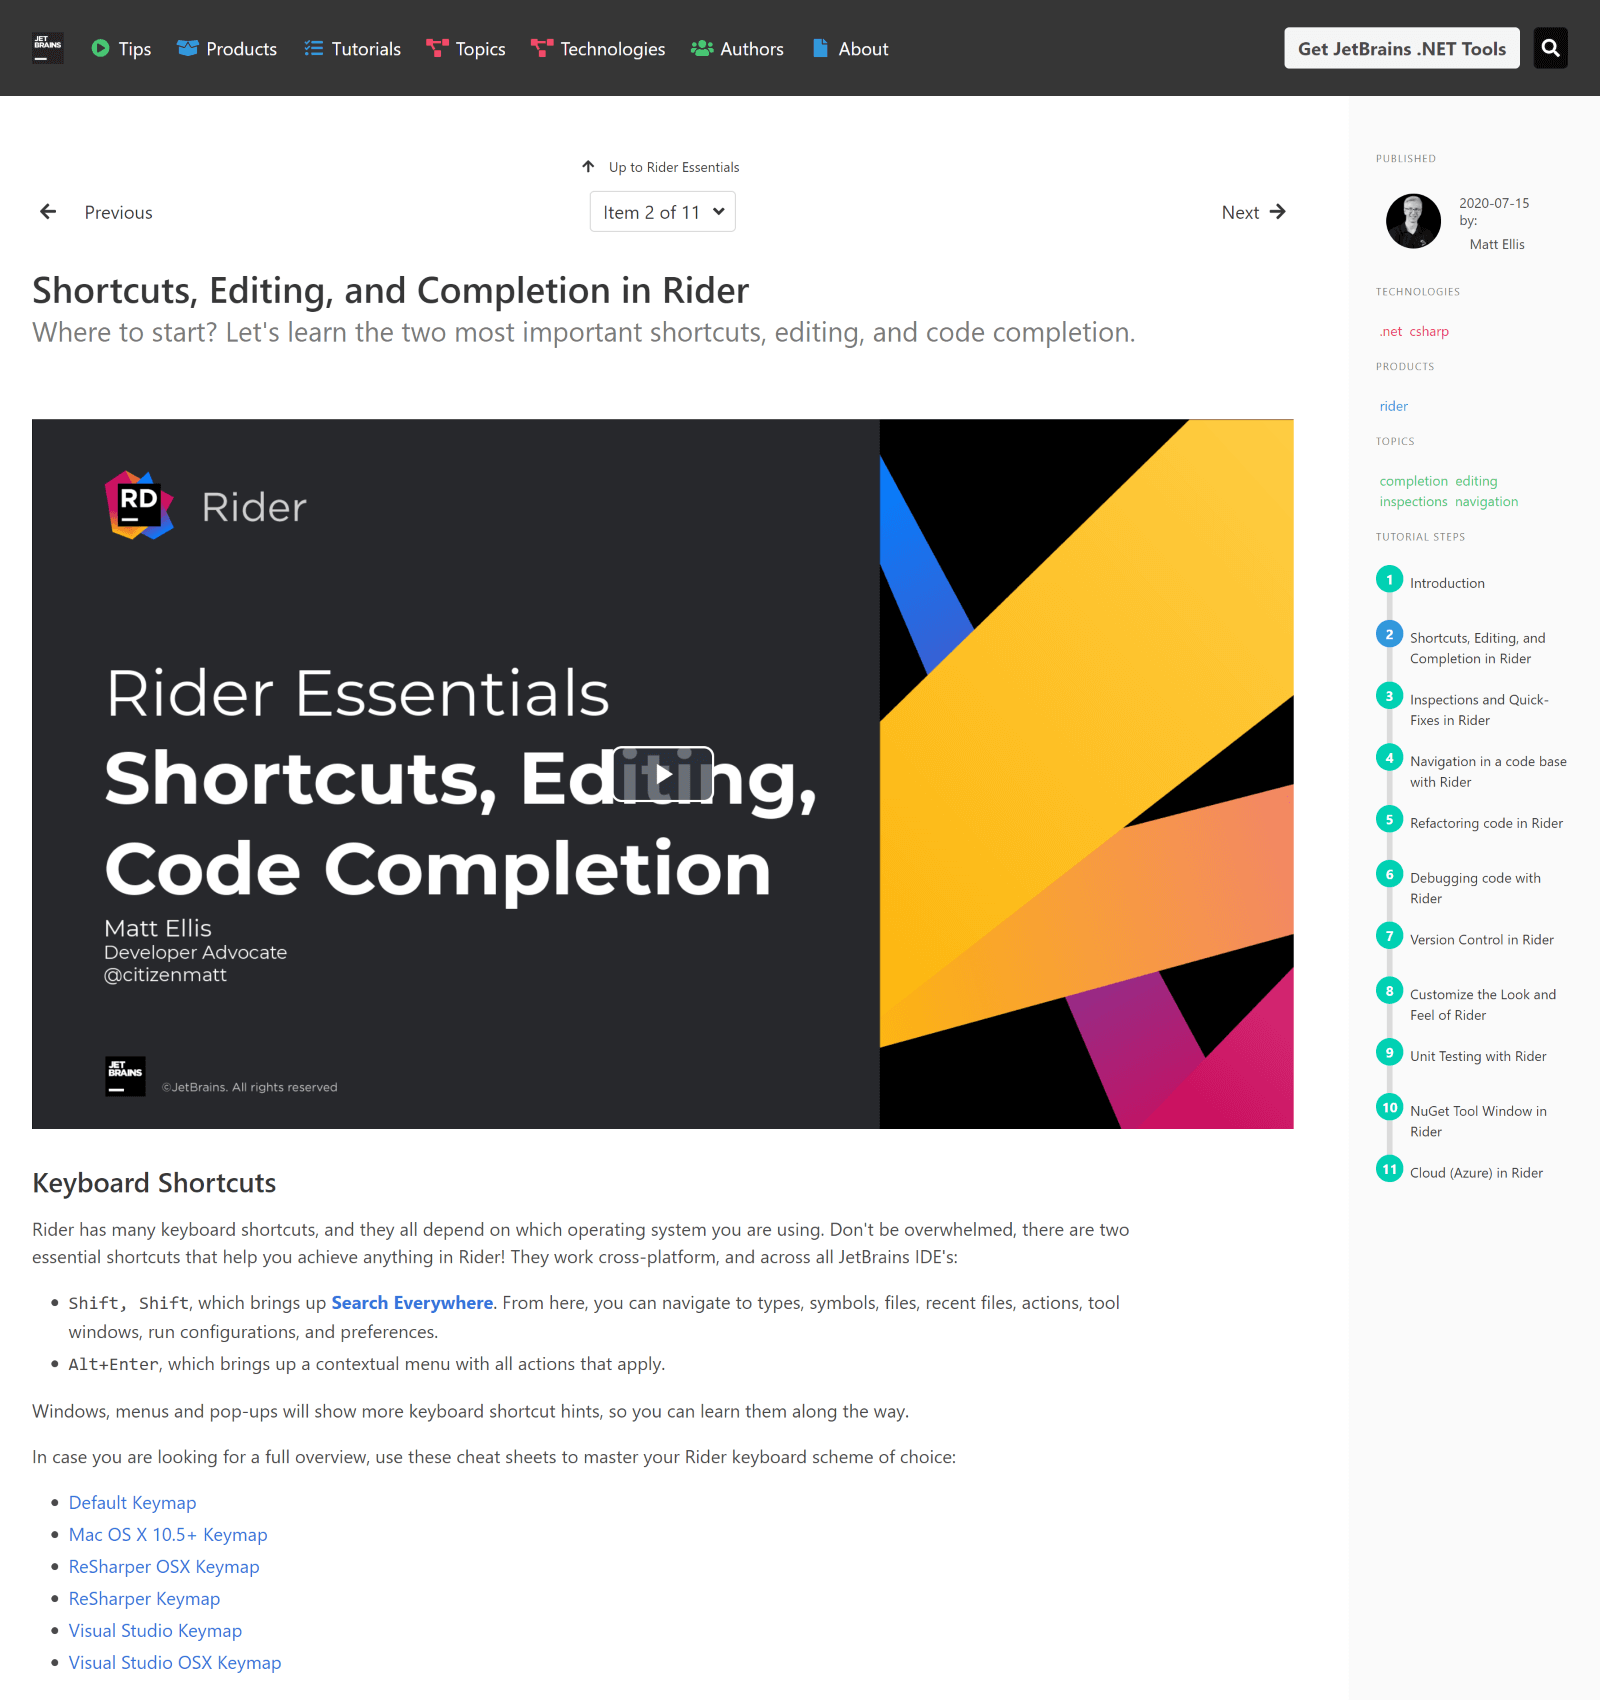 Tutorial: Shortcuts, Editing, and Completion in Rider